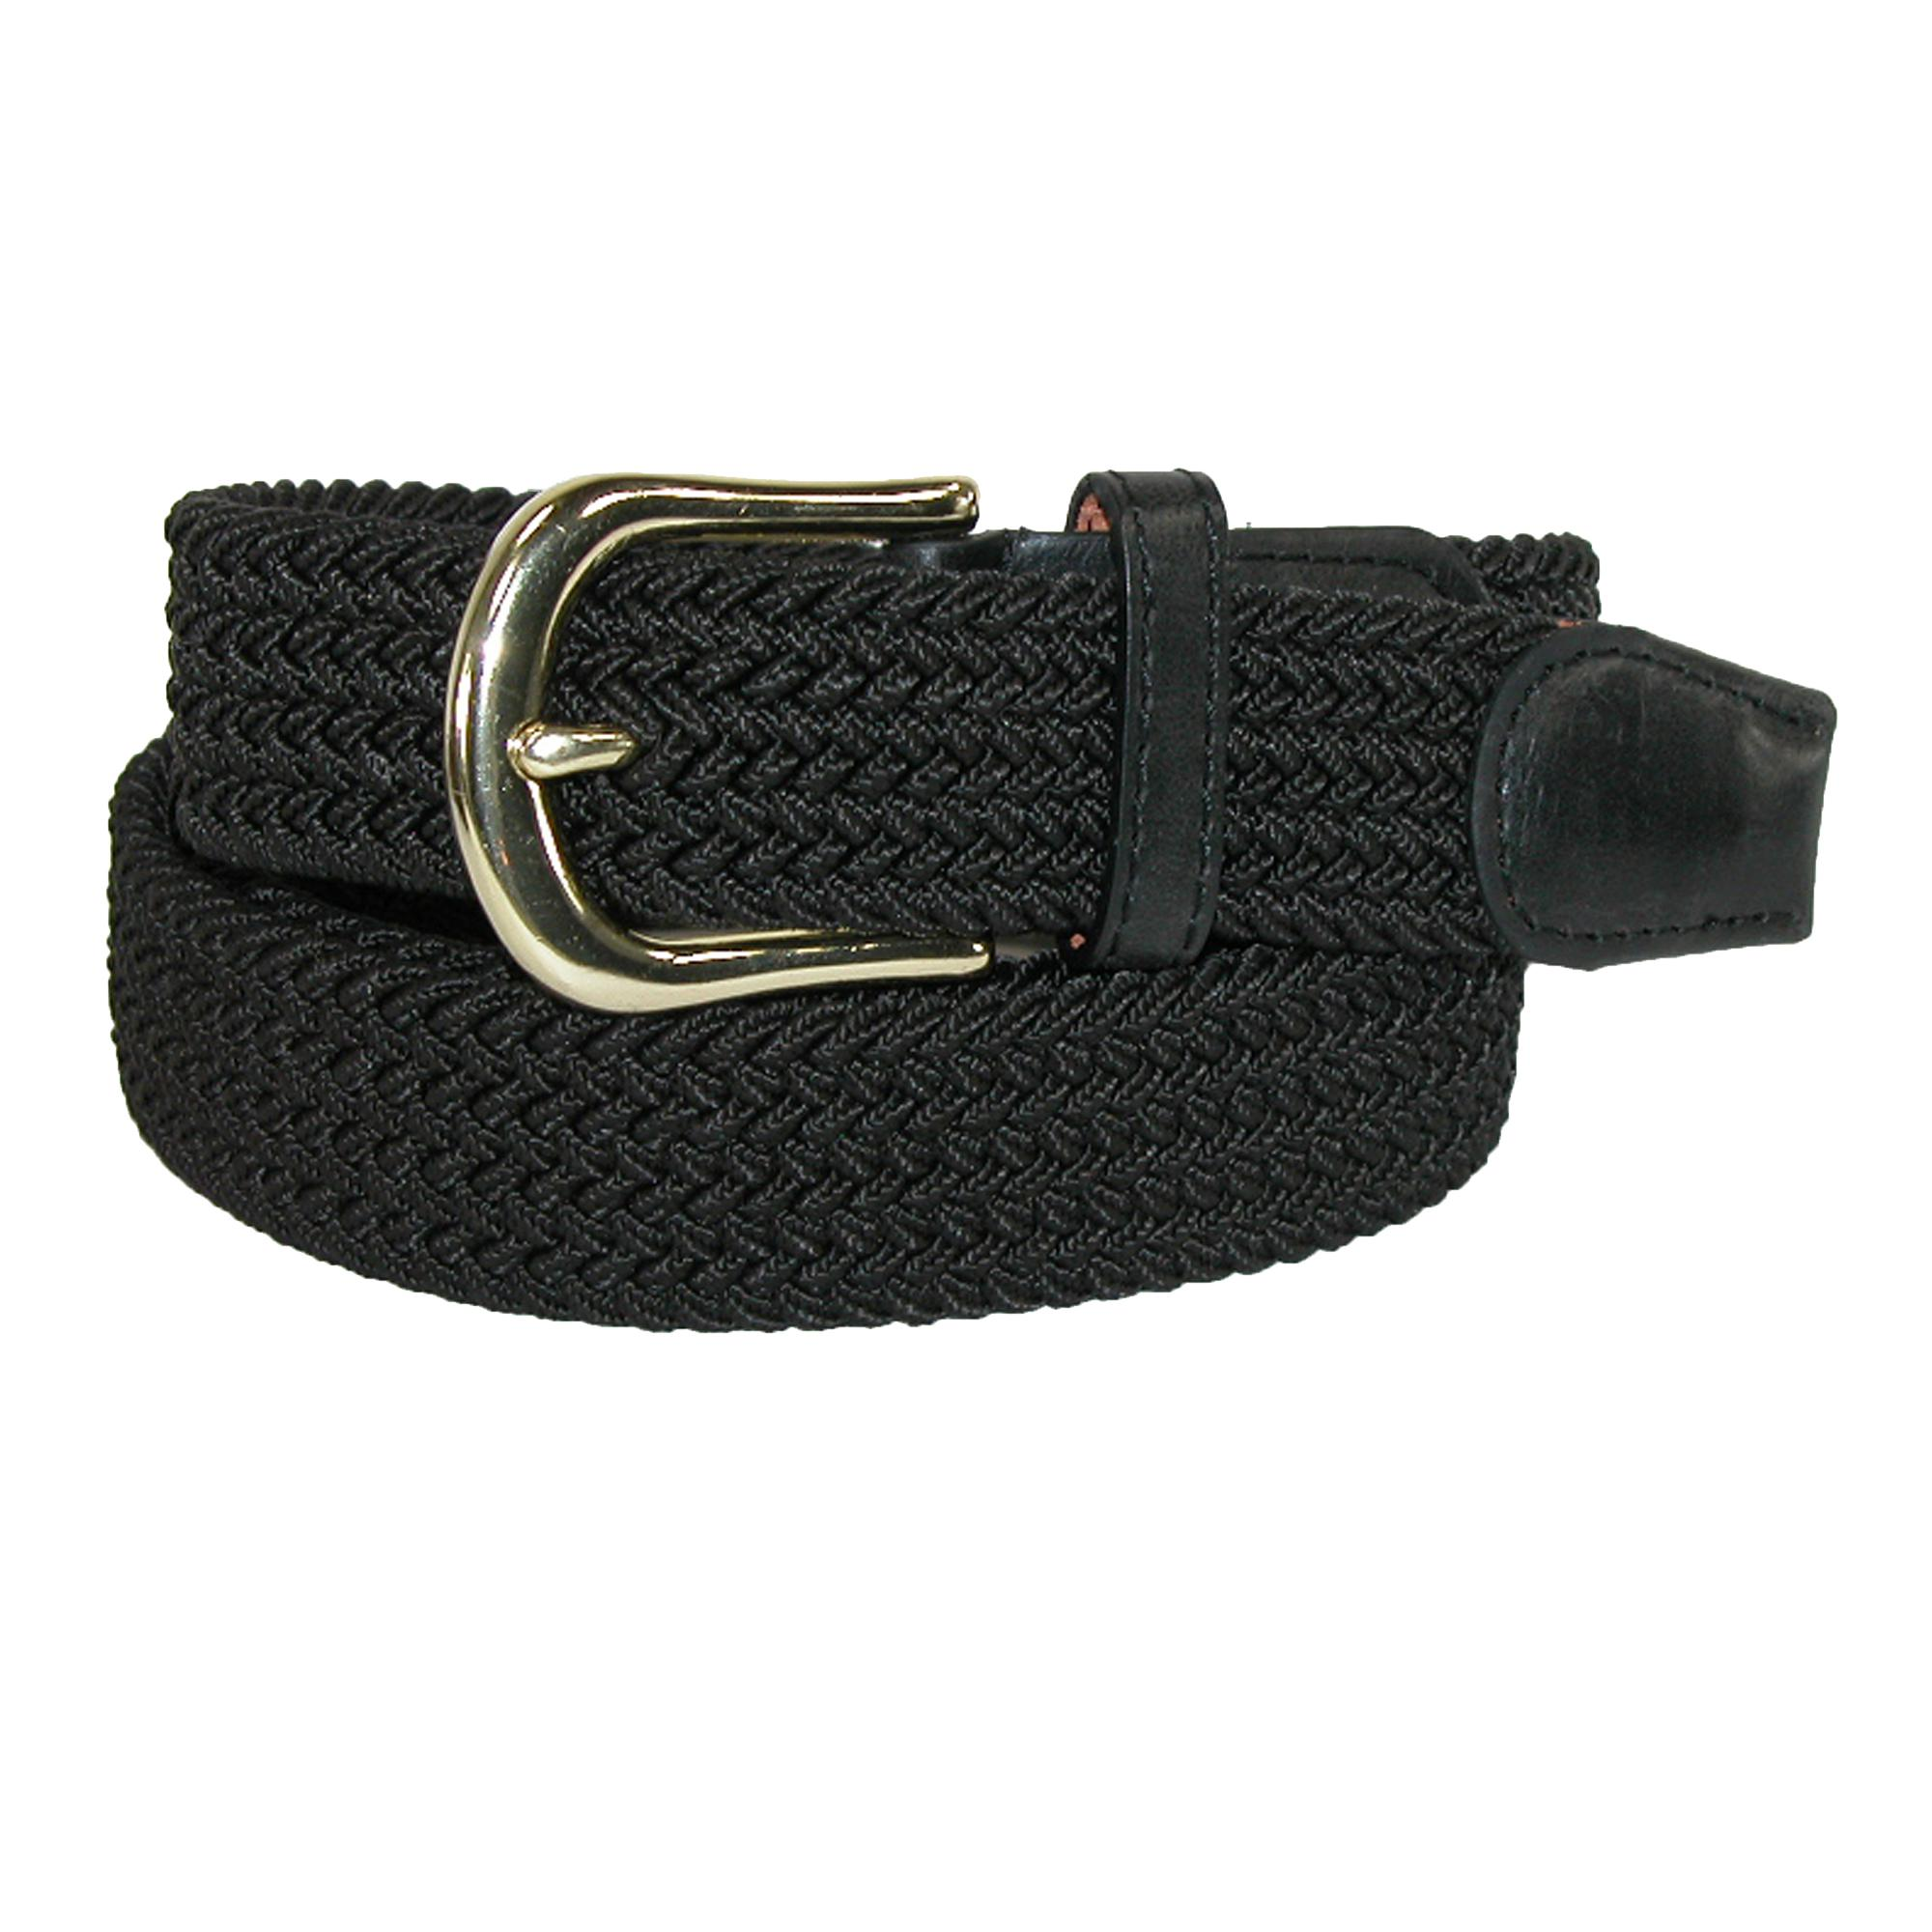 Ctm Mens Elastic Stretch Belt With Gold Buckle And Matching Tabs